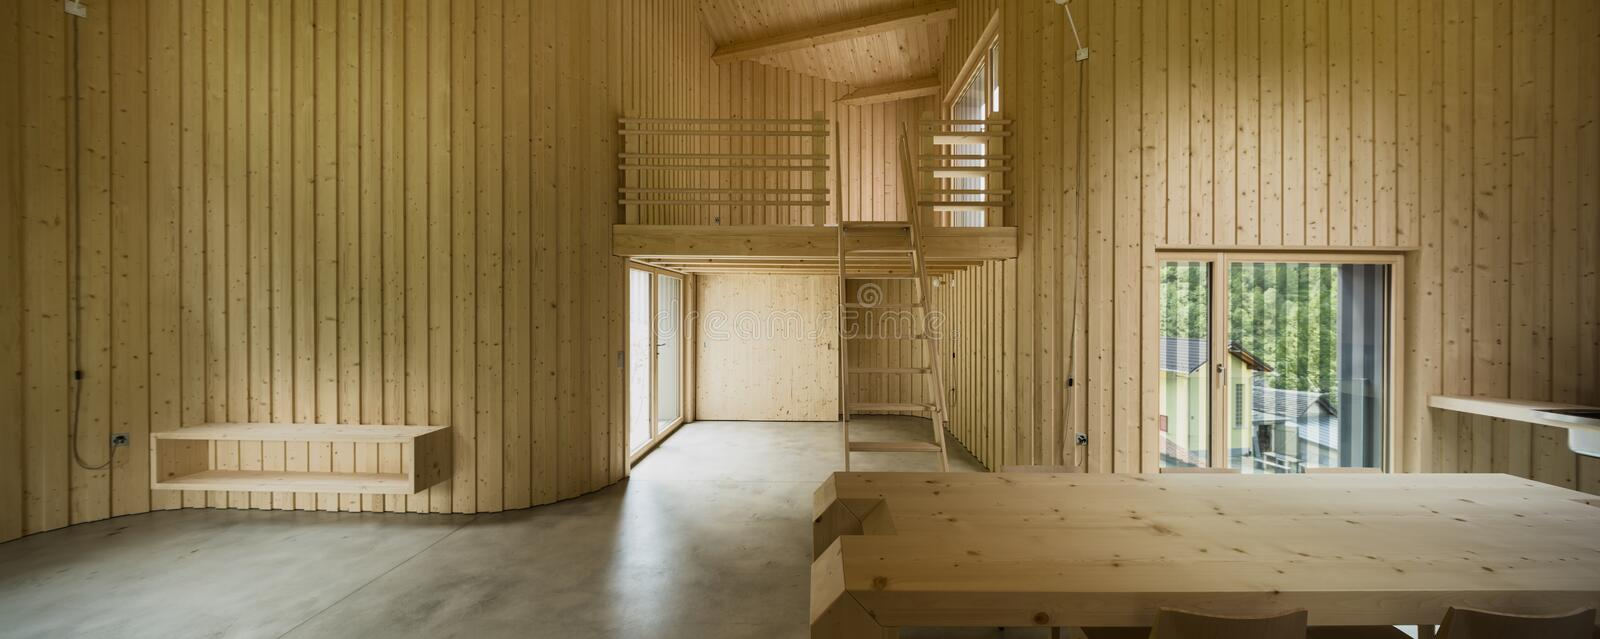 Interior of modern wooden house. Modern house, wooden interiors open space. Project by Daniel Buren and Davide Macullo stock photos